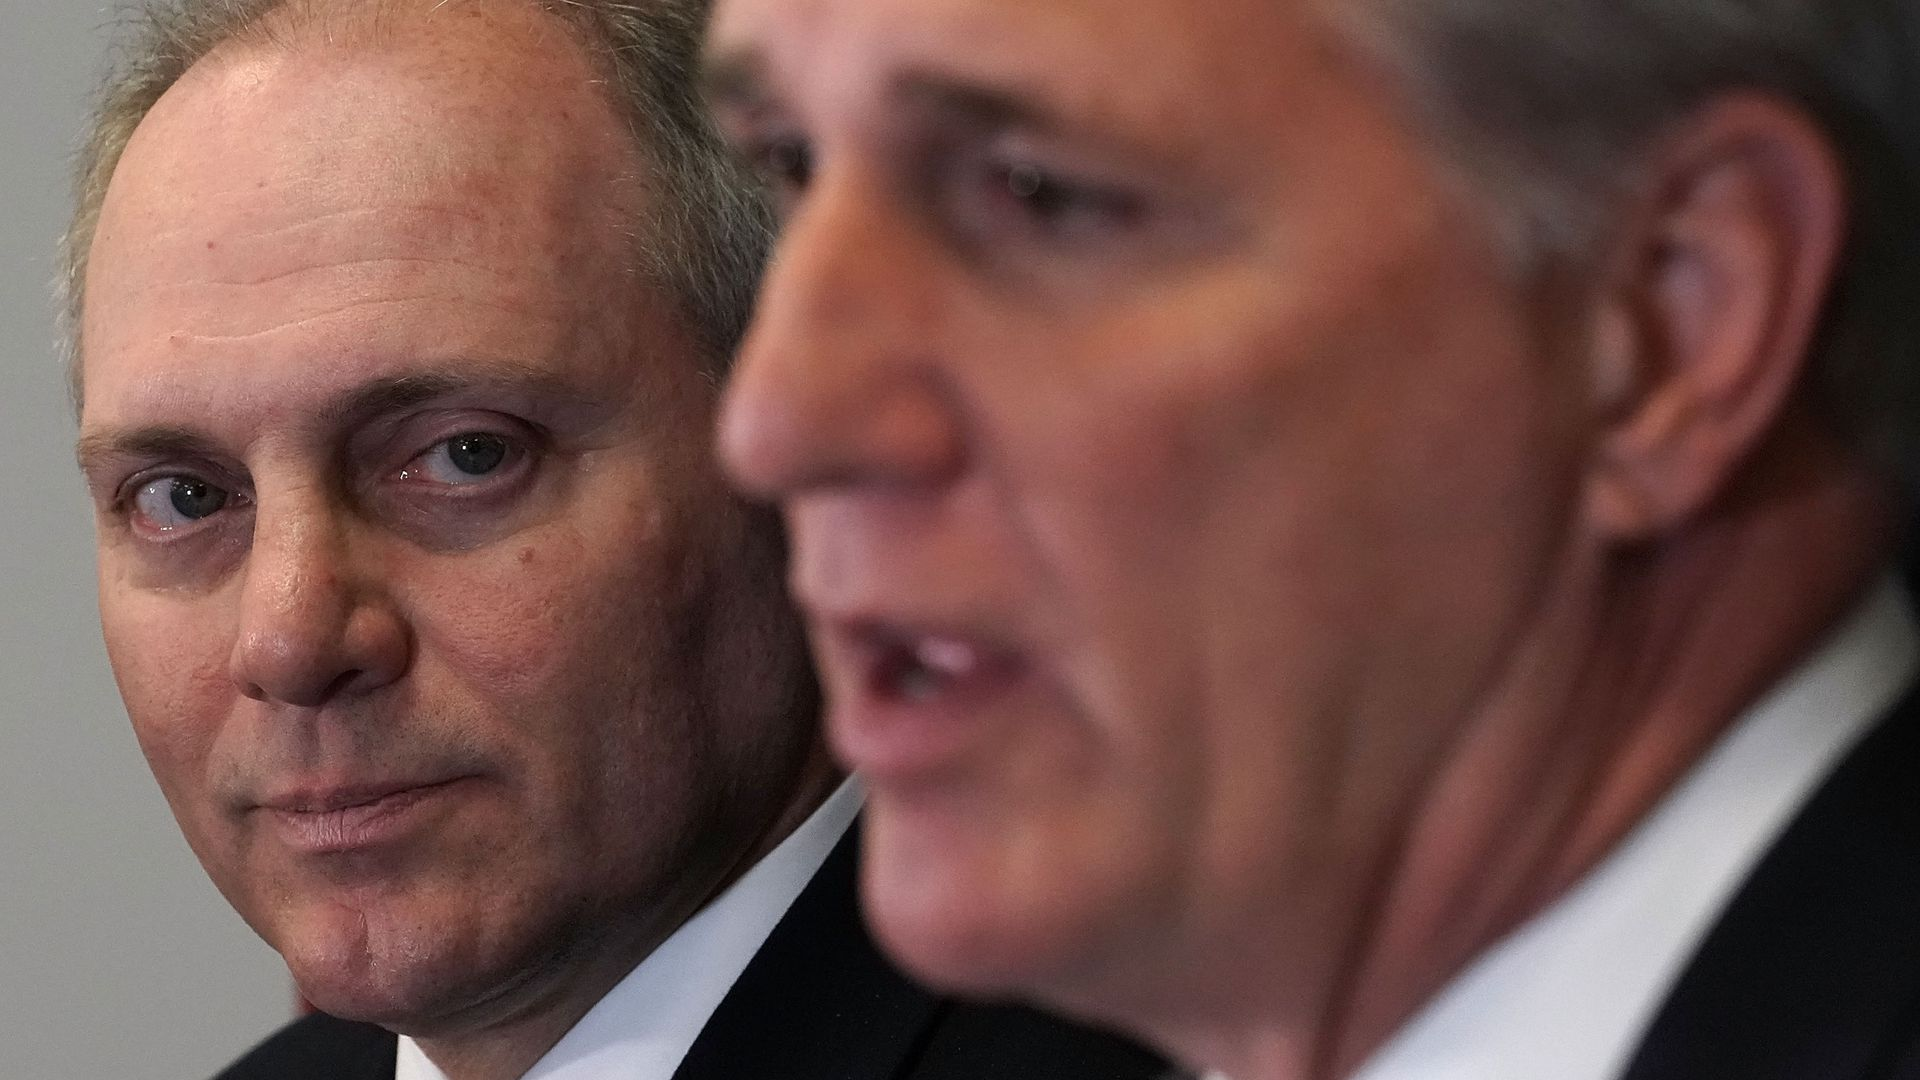 Rep. Steve Scalise in focus looking past Rep. Kevin McCarthy who is out of focus.